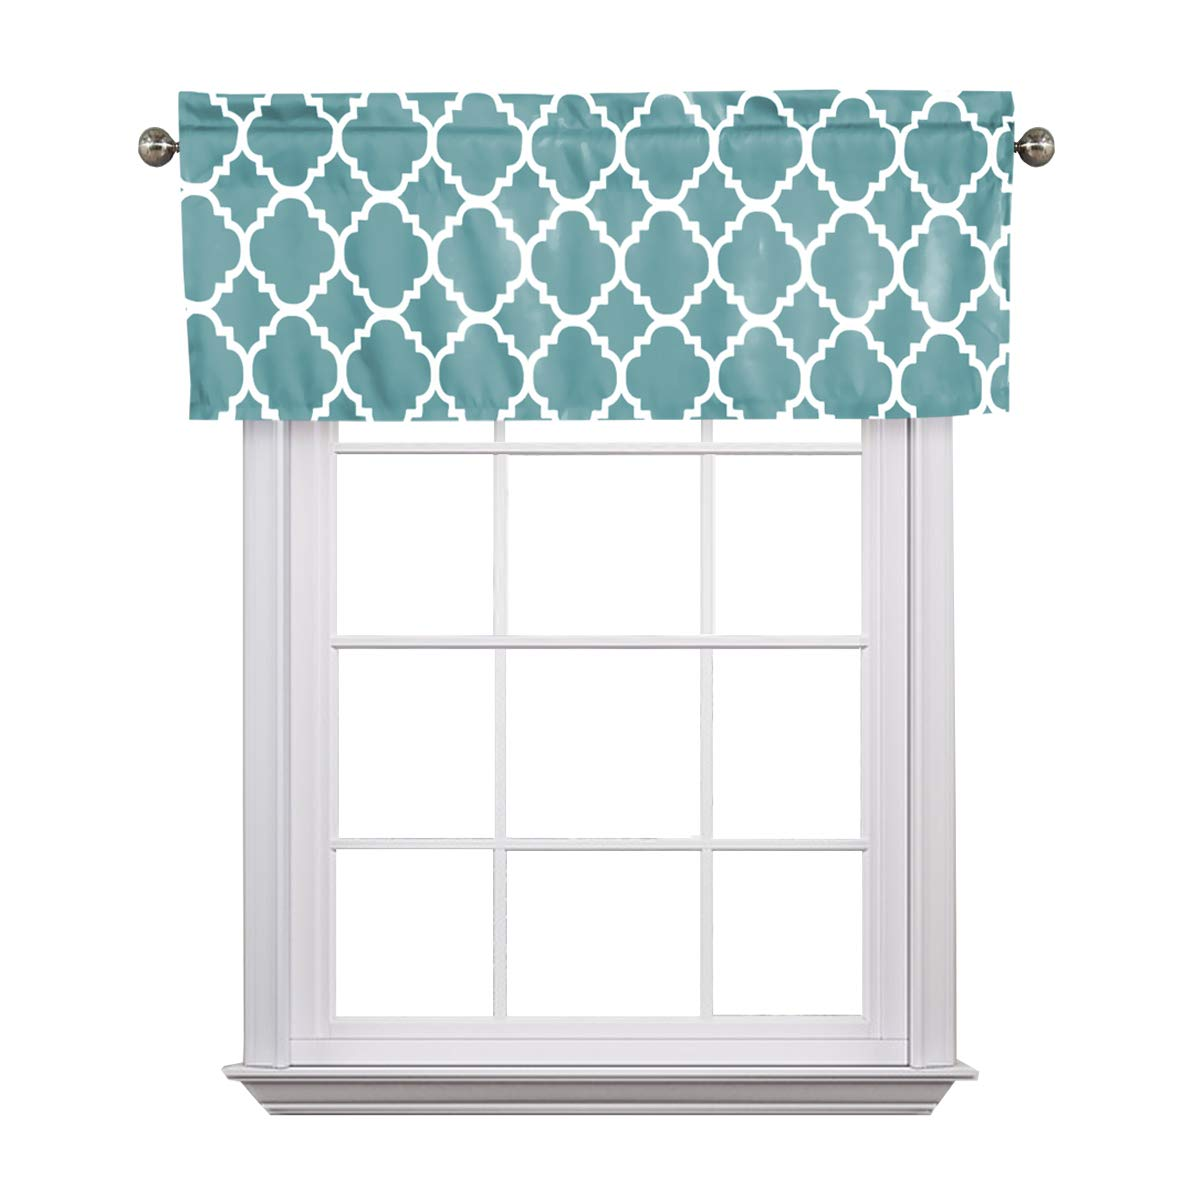 Flamingo P Moroccan Teal Valance Curtain Extra Wide and Short Window Treatment for for Kitchen Living Dining Room Bathroom Kids Girl Baby Nursery Bedroom 52'' X18''